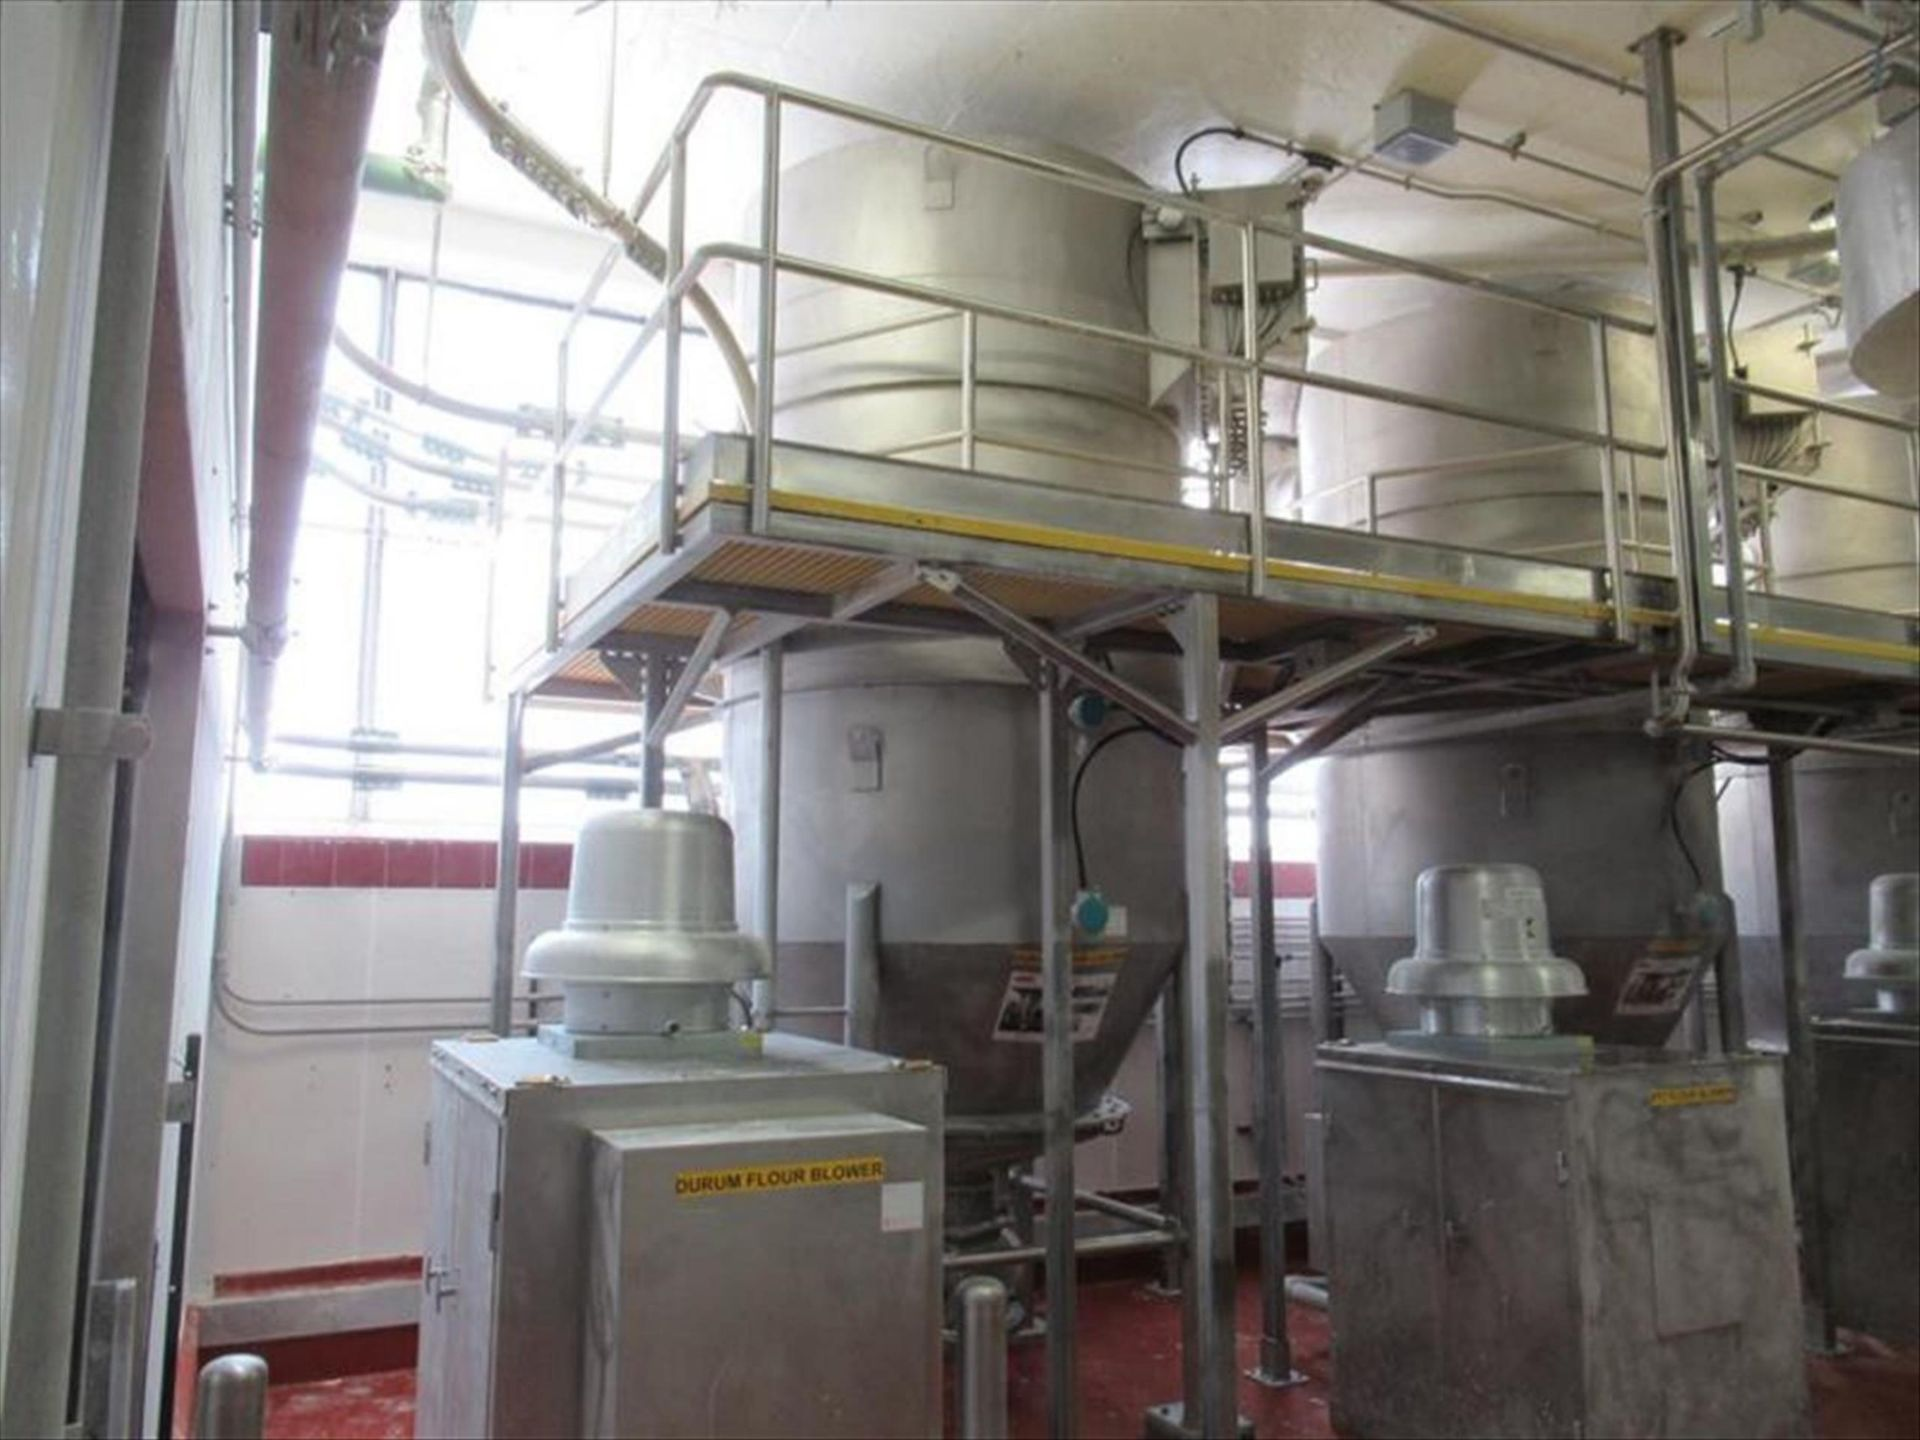 Lot 336 - Schick durum flour receiver approx 6 ft dia x 10 ft h straight x 30 in cone bottom, cone top, with